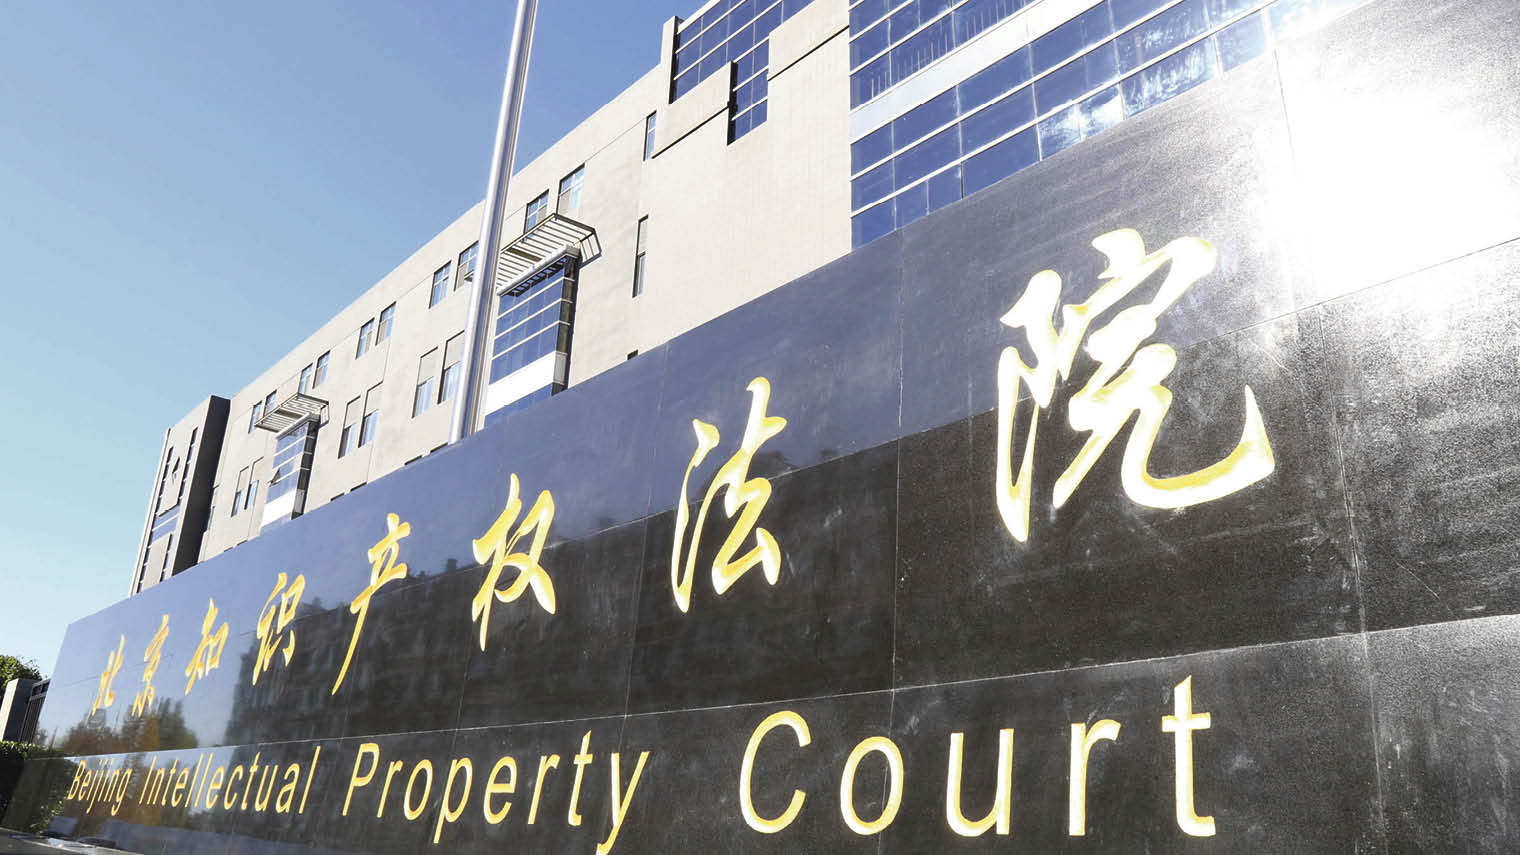 China's first intellectual property court